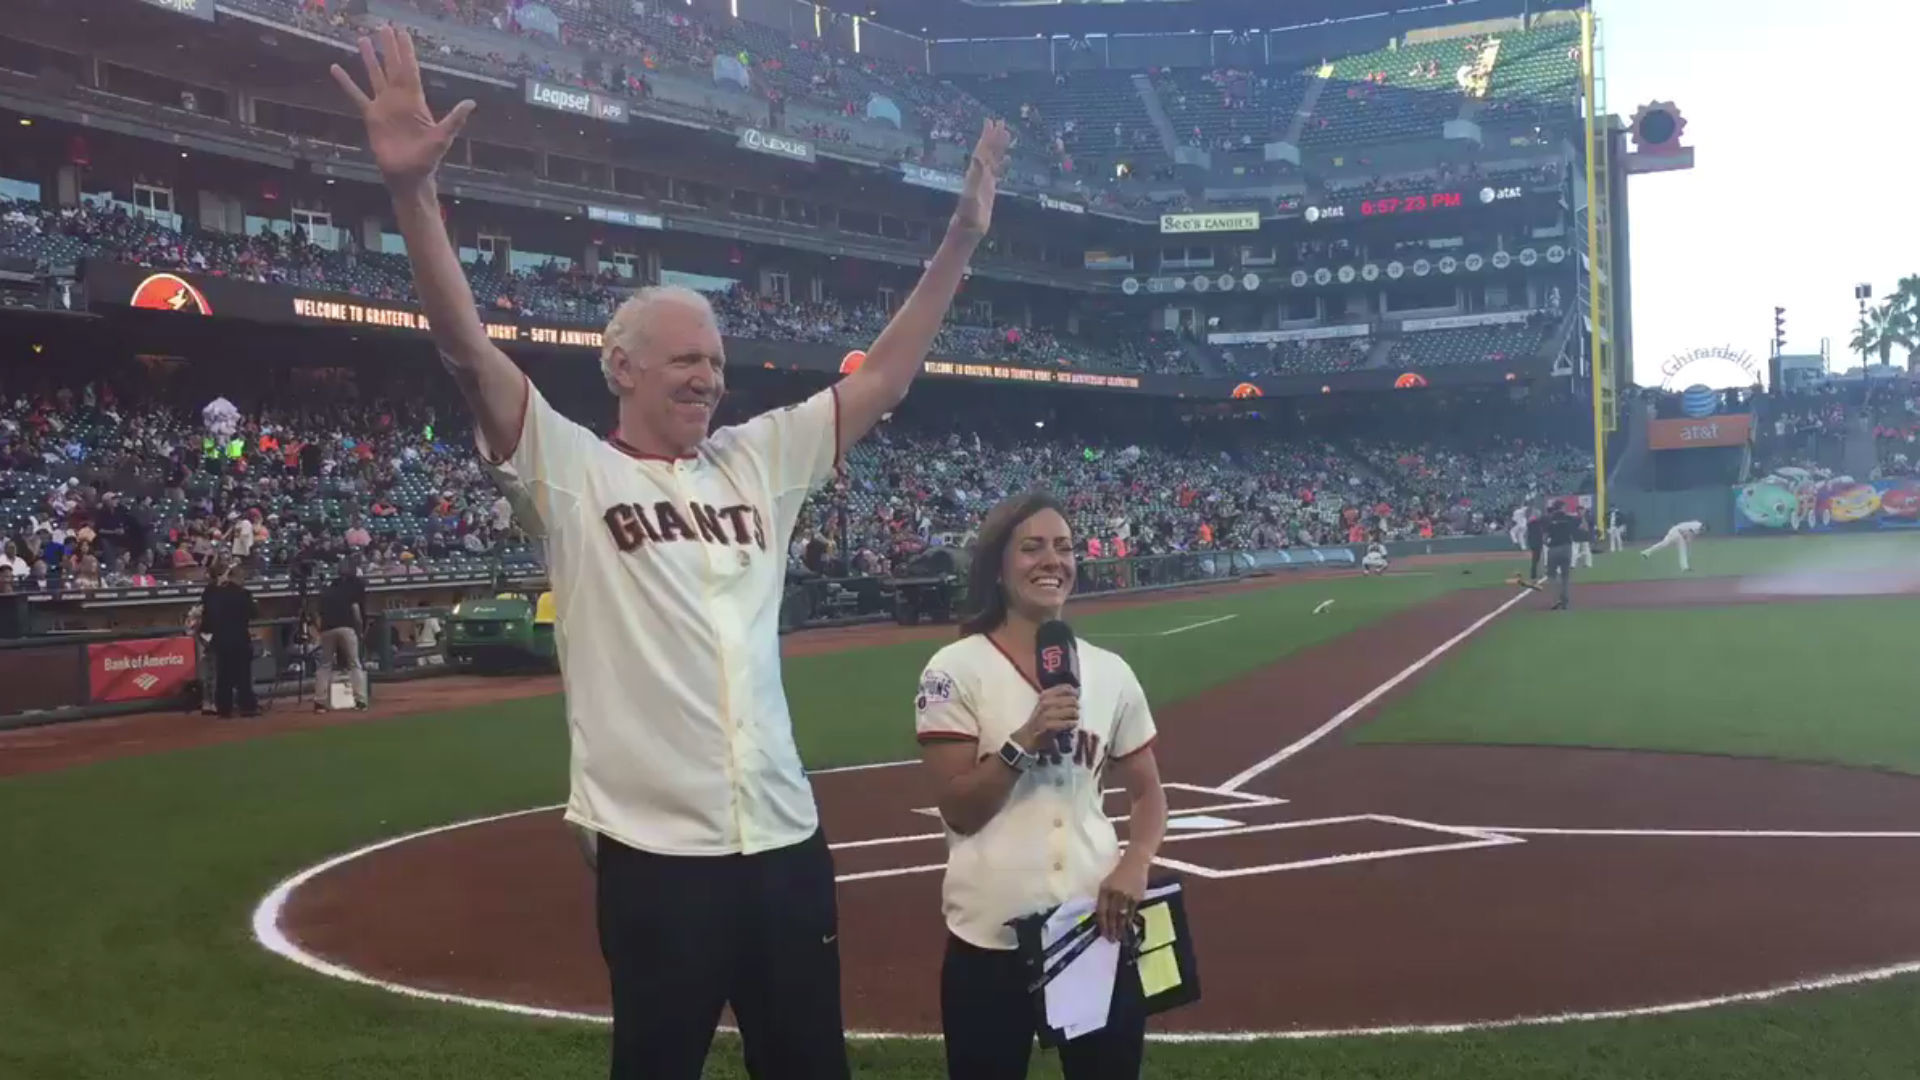 1920x1080 Bill Walton addresses crowd at Giants' Grateful Dead night | MLB | Sporting  News